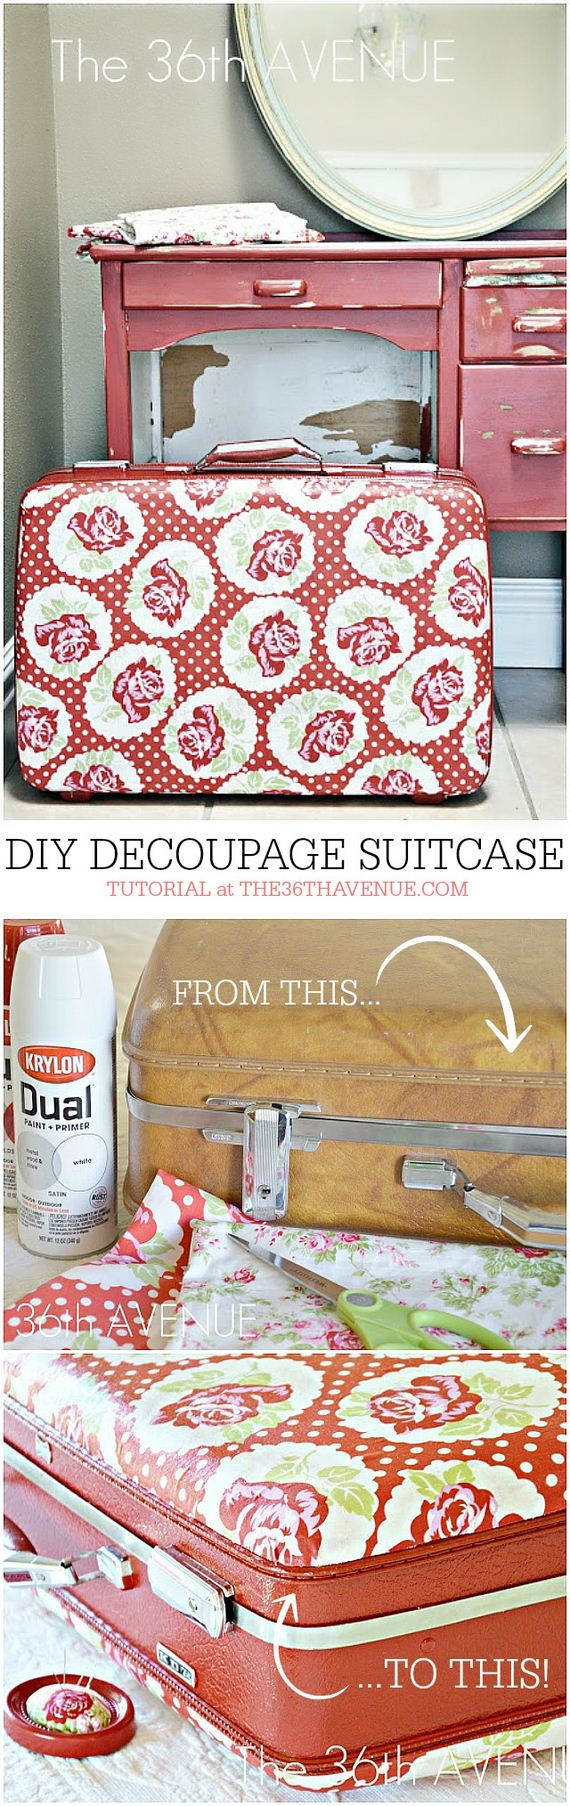 01-Incredible-Ideas-To-Upcycle-An-Old-Suitcase